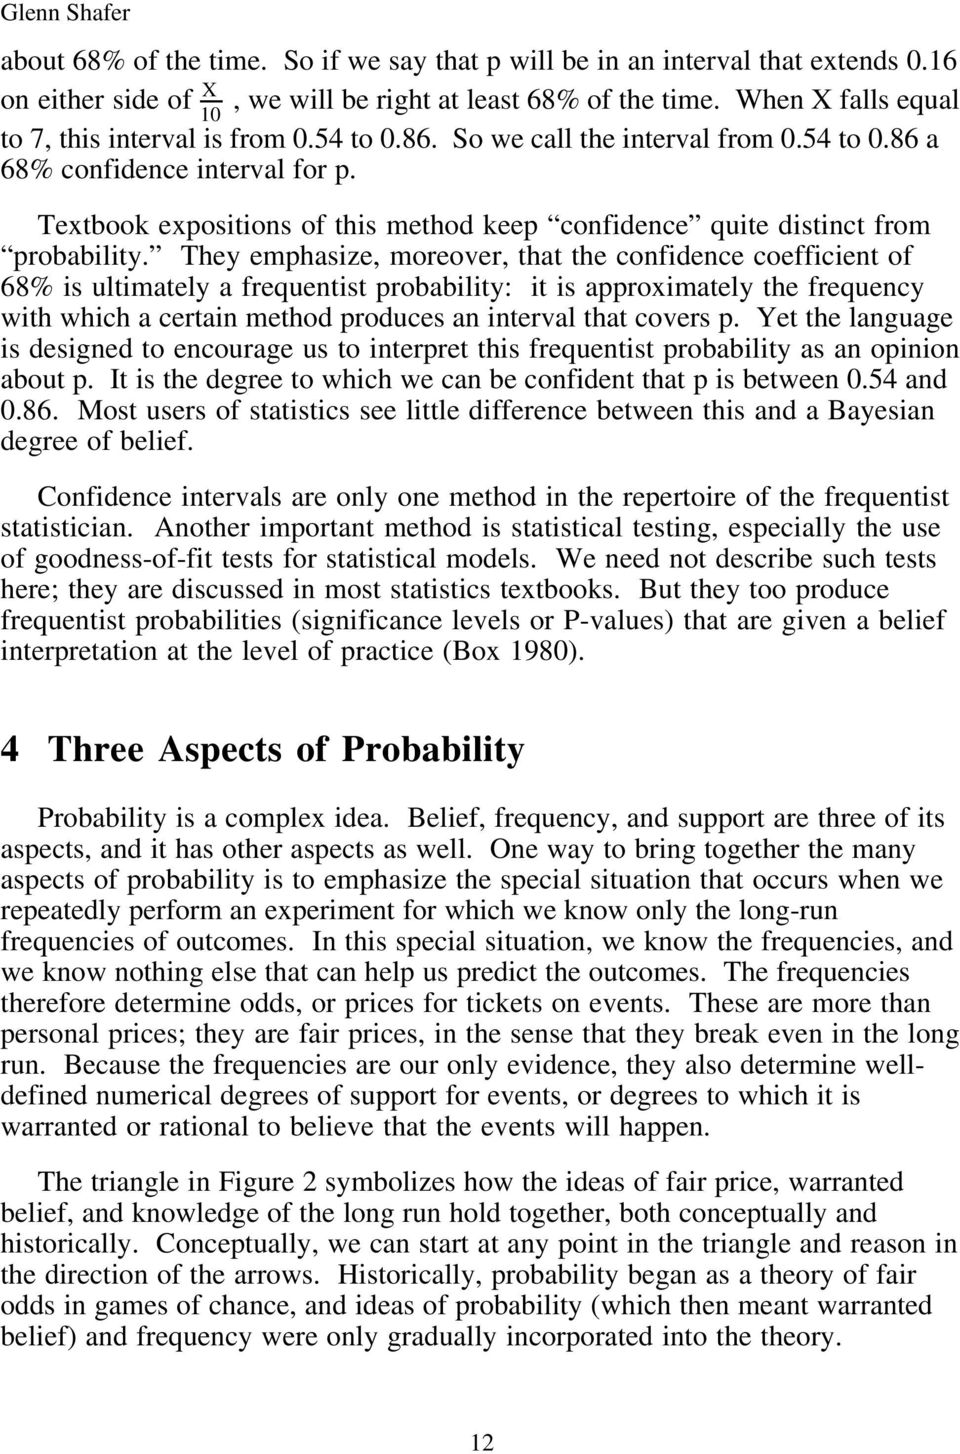 They emphasize, moreover, that the confidence coefficient of 68% is ultimately a frequentist probability: it is approximately the frequency with which a certain method produces an interval that